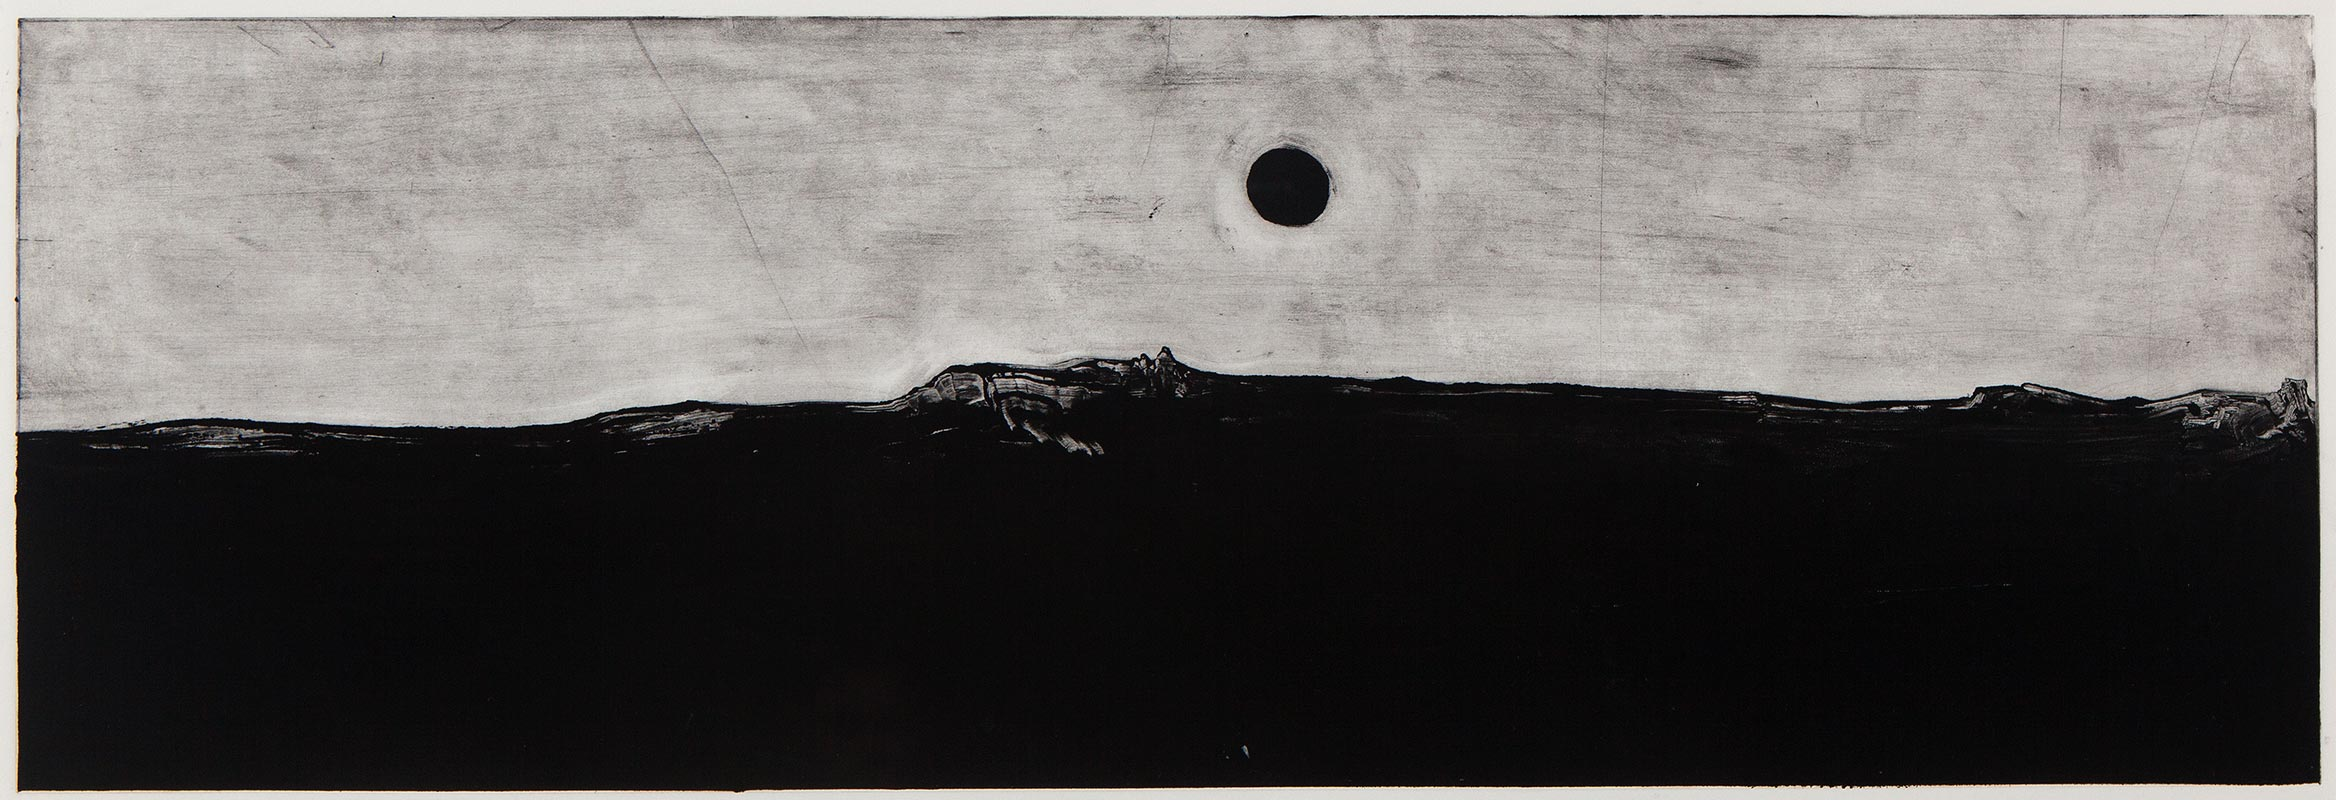 Andrew Tyler - Untitled (Black Sun)